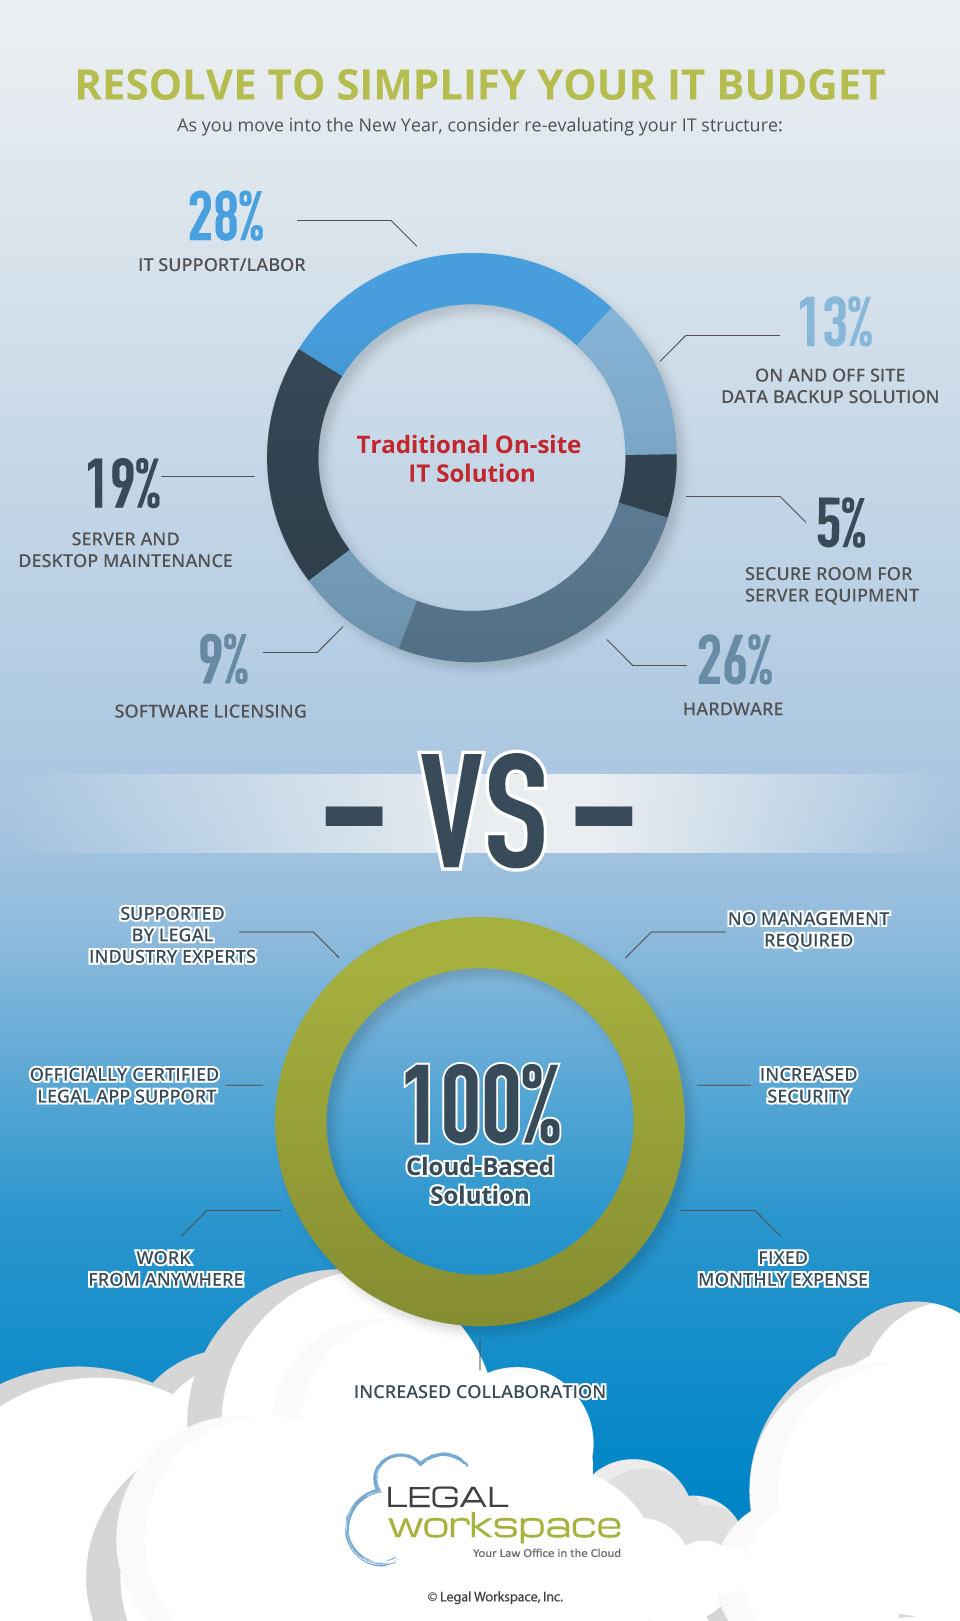 resolve-to-simplify-it-budget-infographic